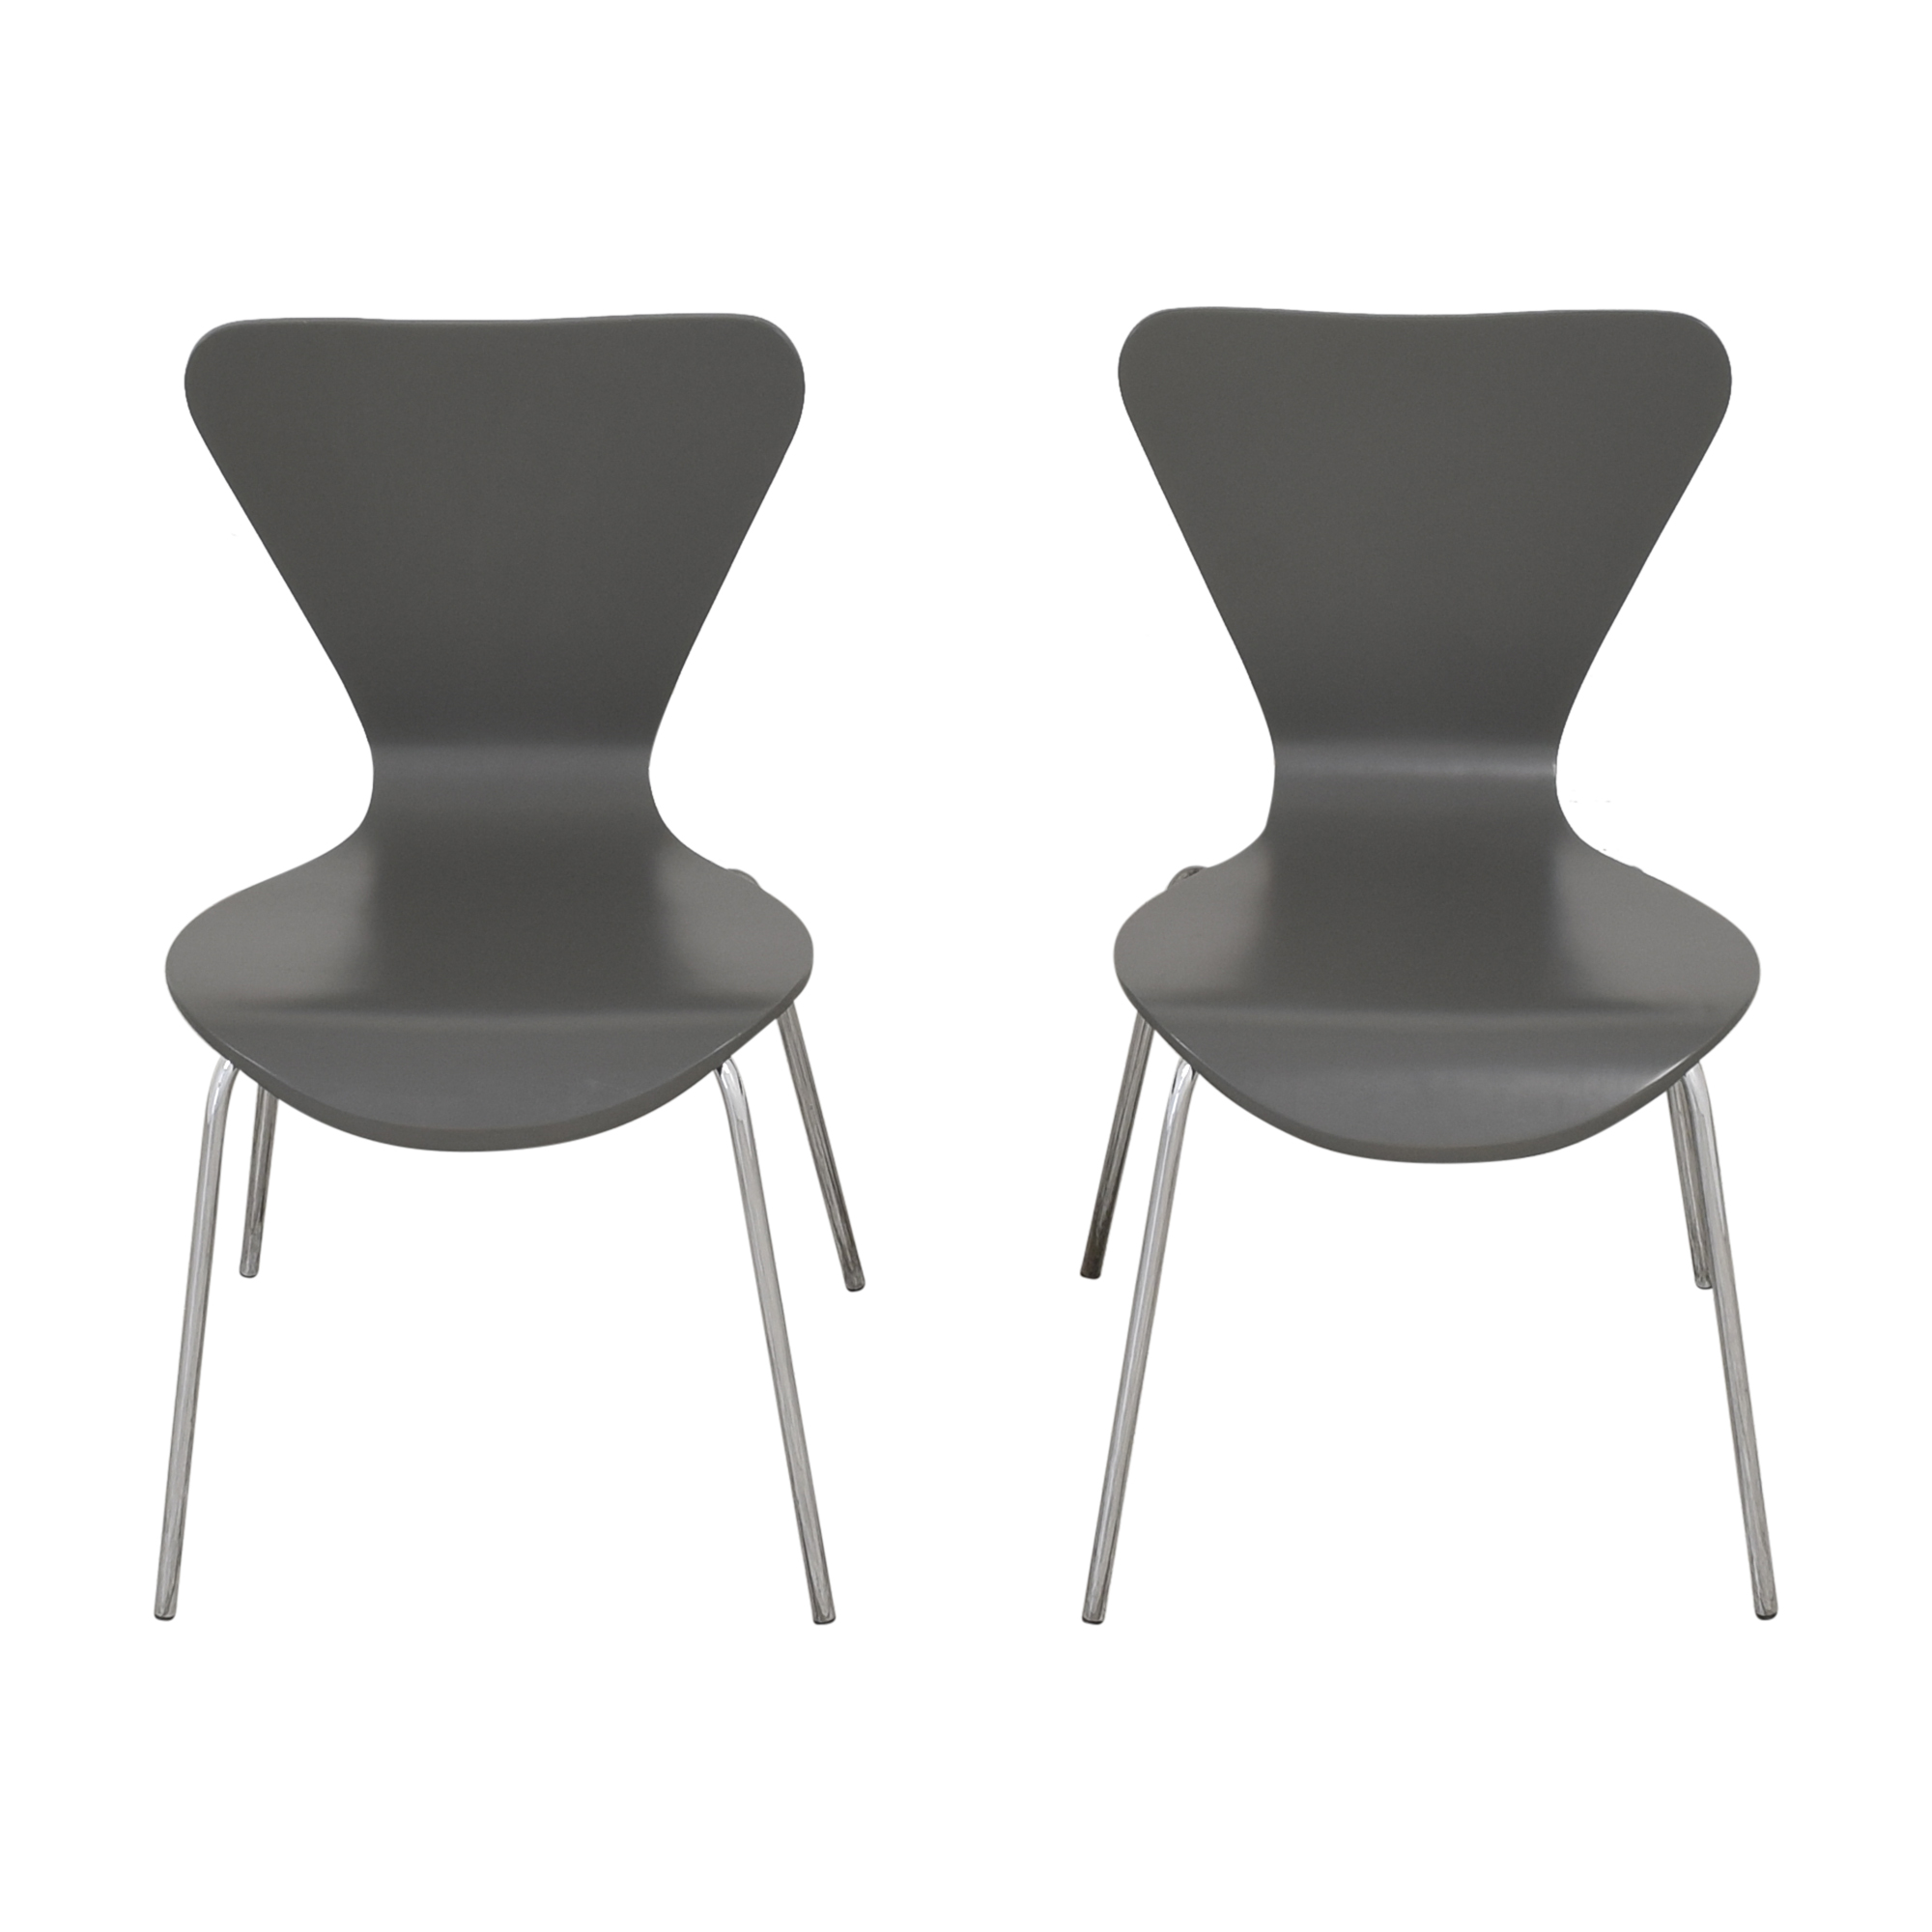 Room & Board Room & Board Modern Pike Chairs Dining Chairs